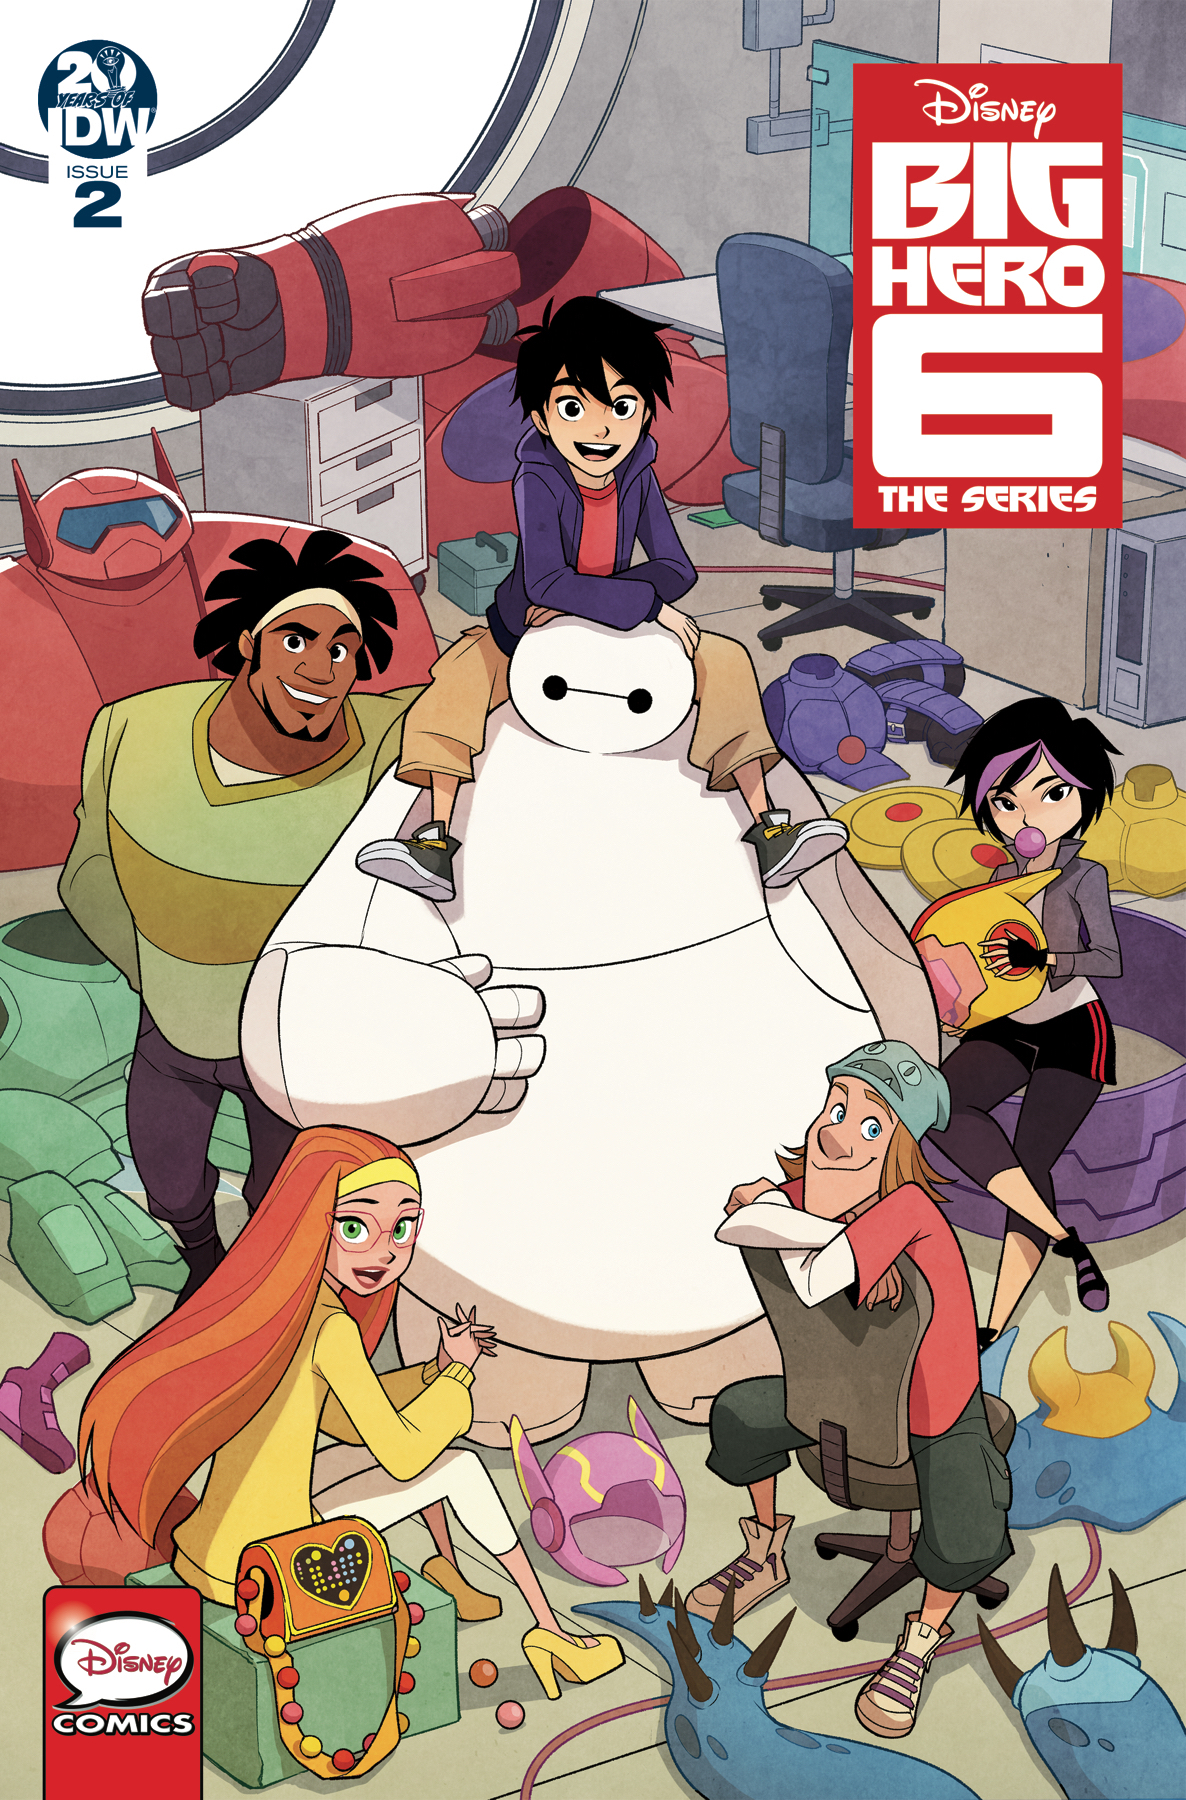 BIG HERO 6 THE SERIES #2 CVR A GURIHIRU (RES)